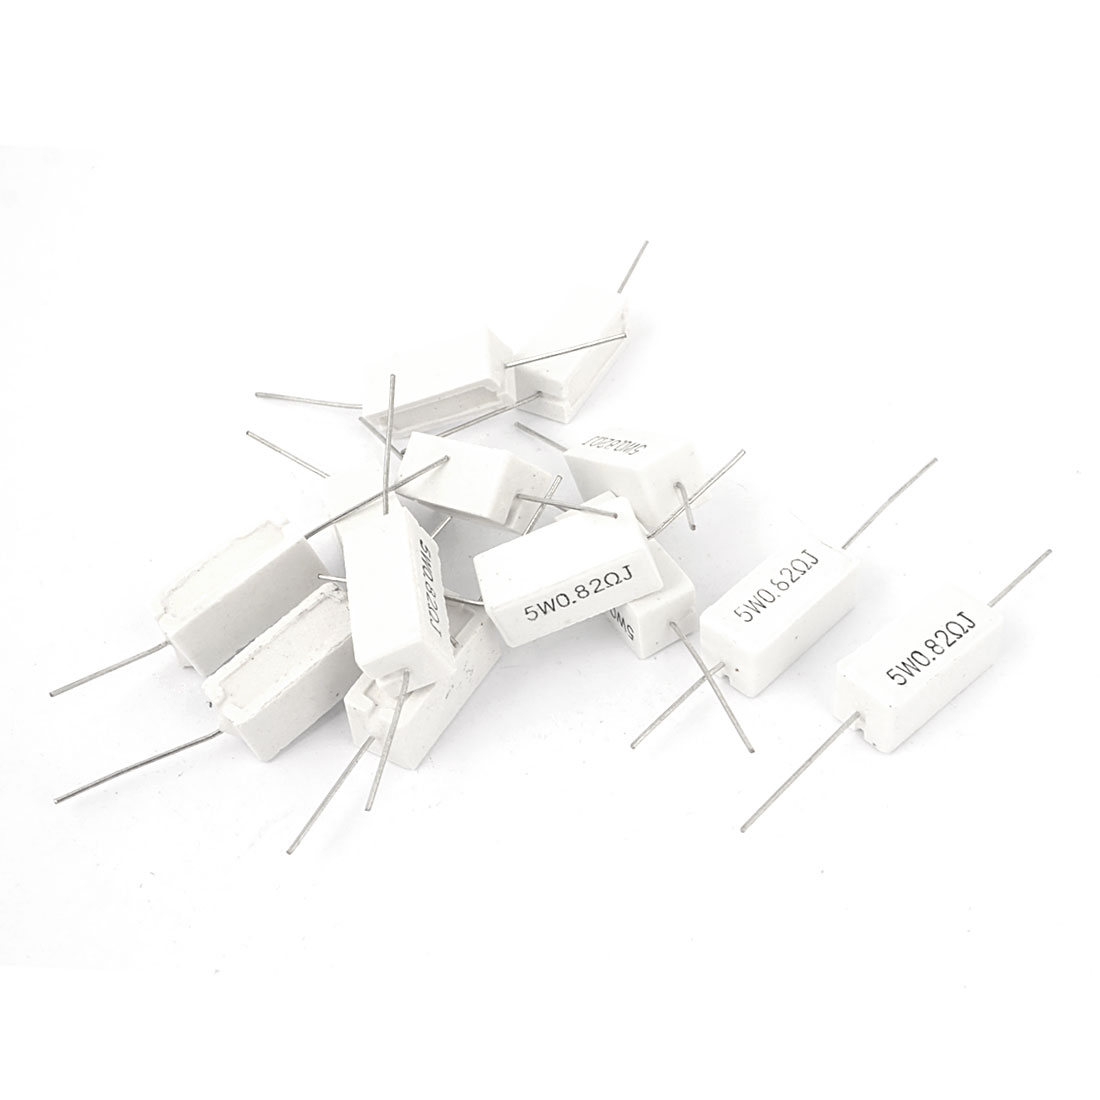 15 Pcs Axial Ceramic Cement Power Resistor 0.82 Ohm 5W 5% Tolerance